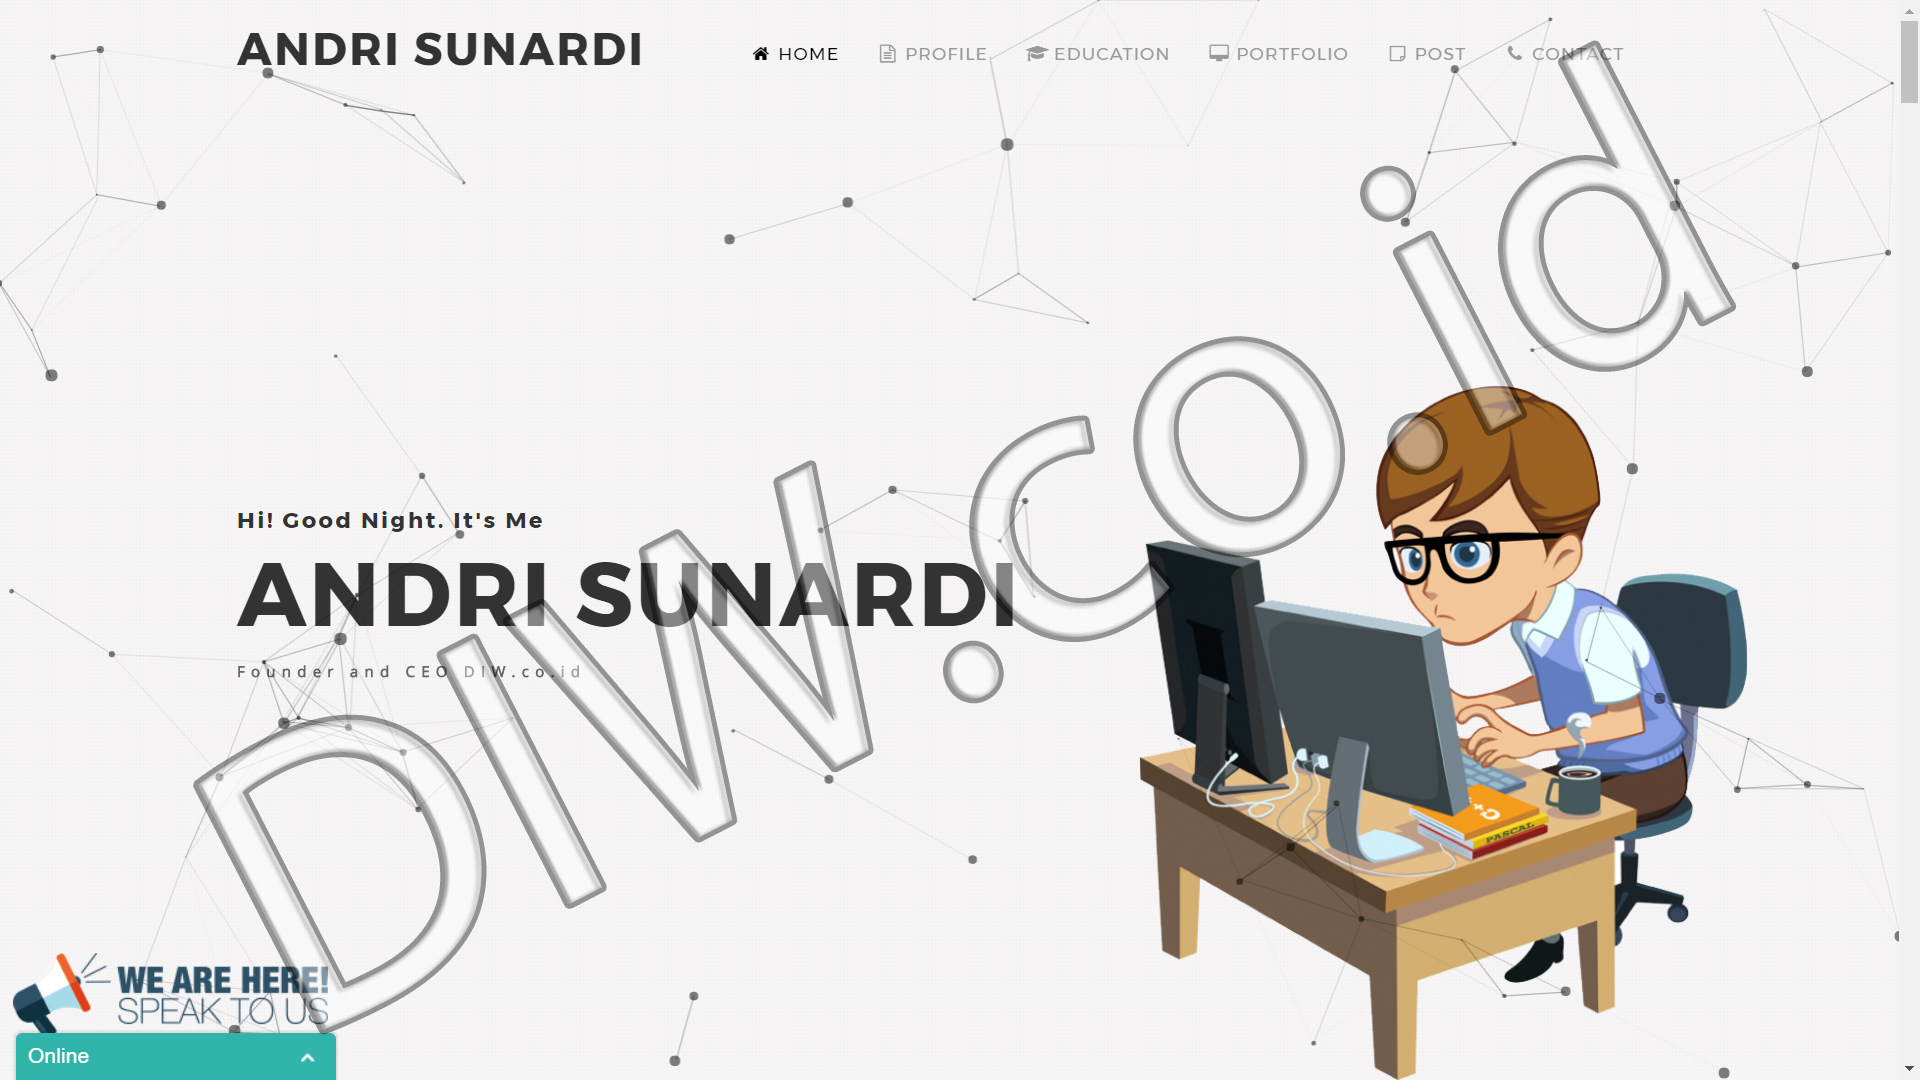 Portfolio 1 - Andri Sunardi - Andri Sunardi - Freelancer - Web Developer - CEO DIW.co.id